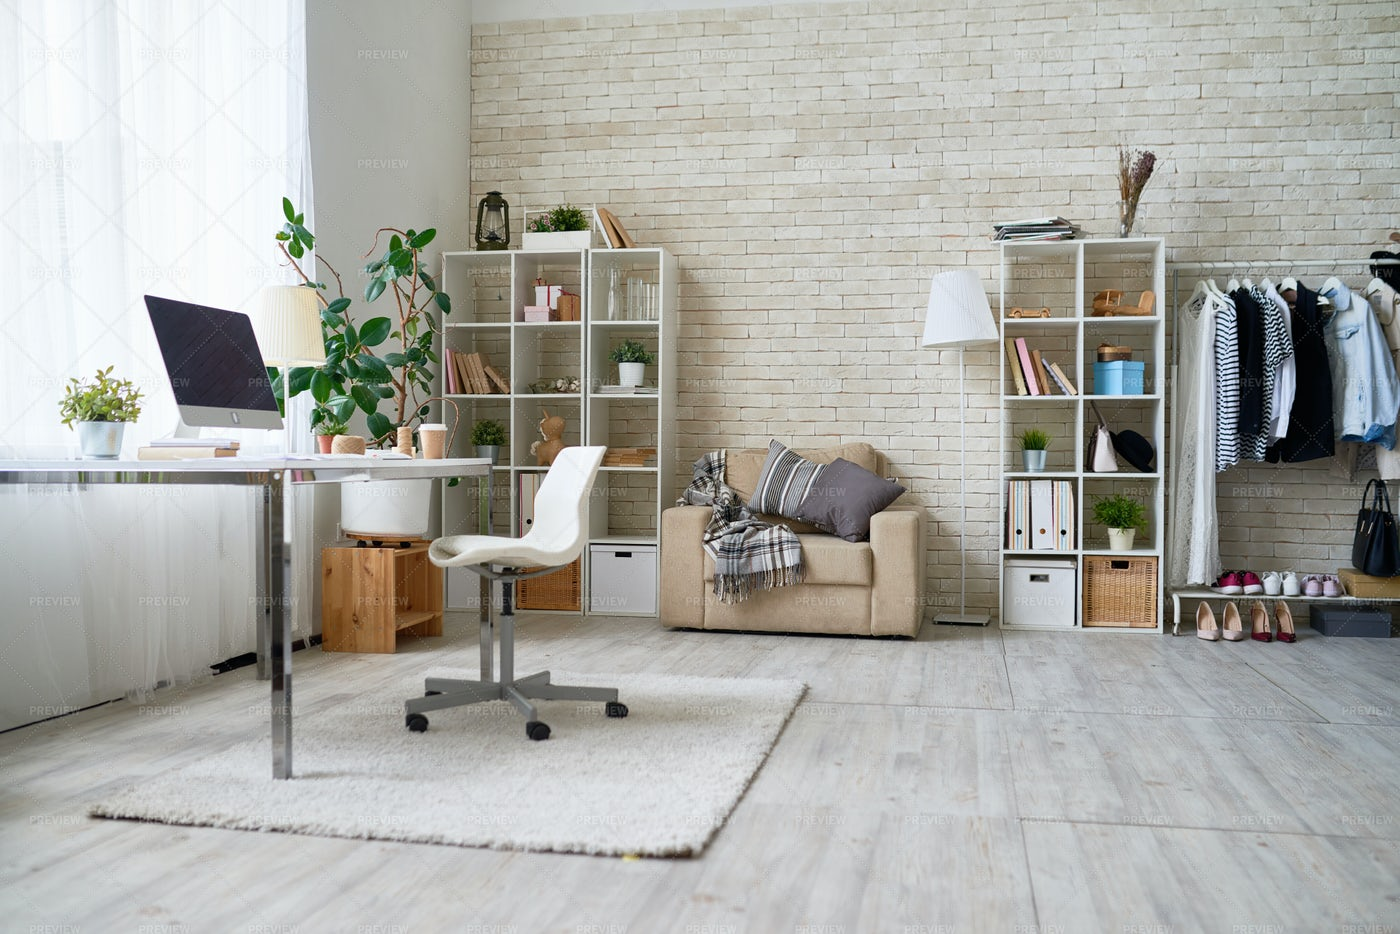 Home Office In Modern Apartment: Stock Photos